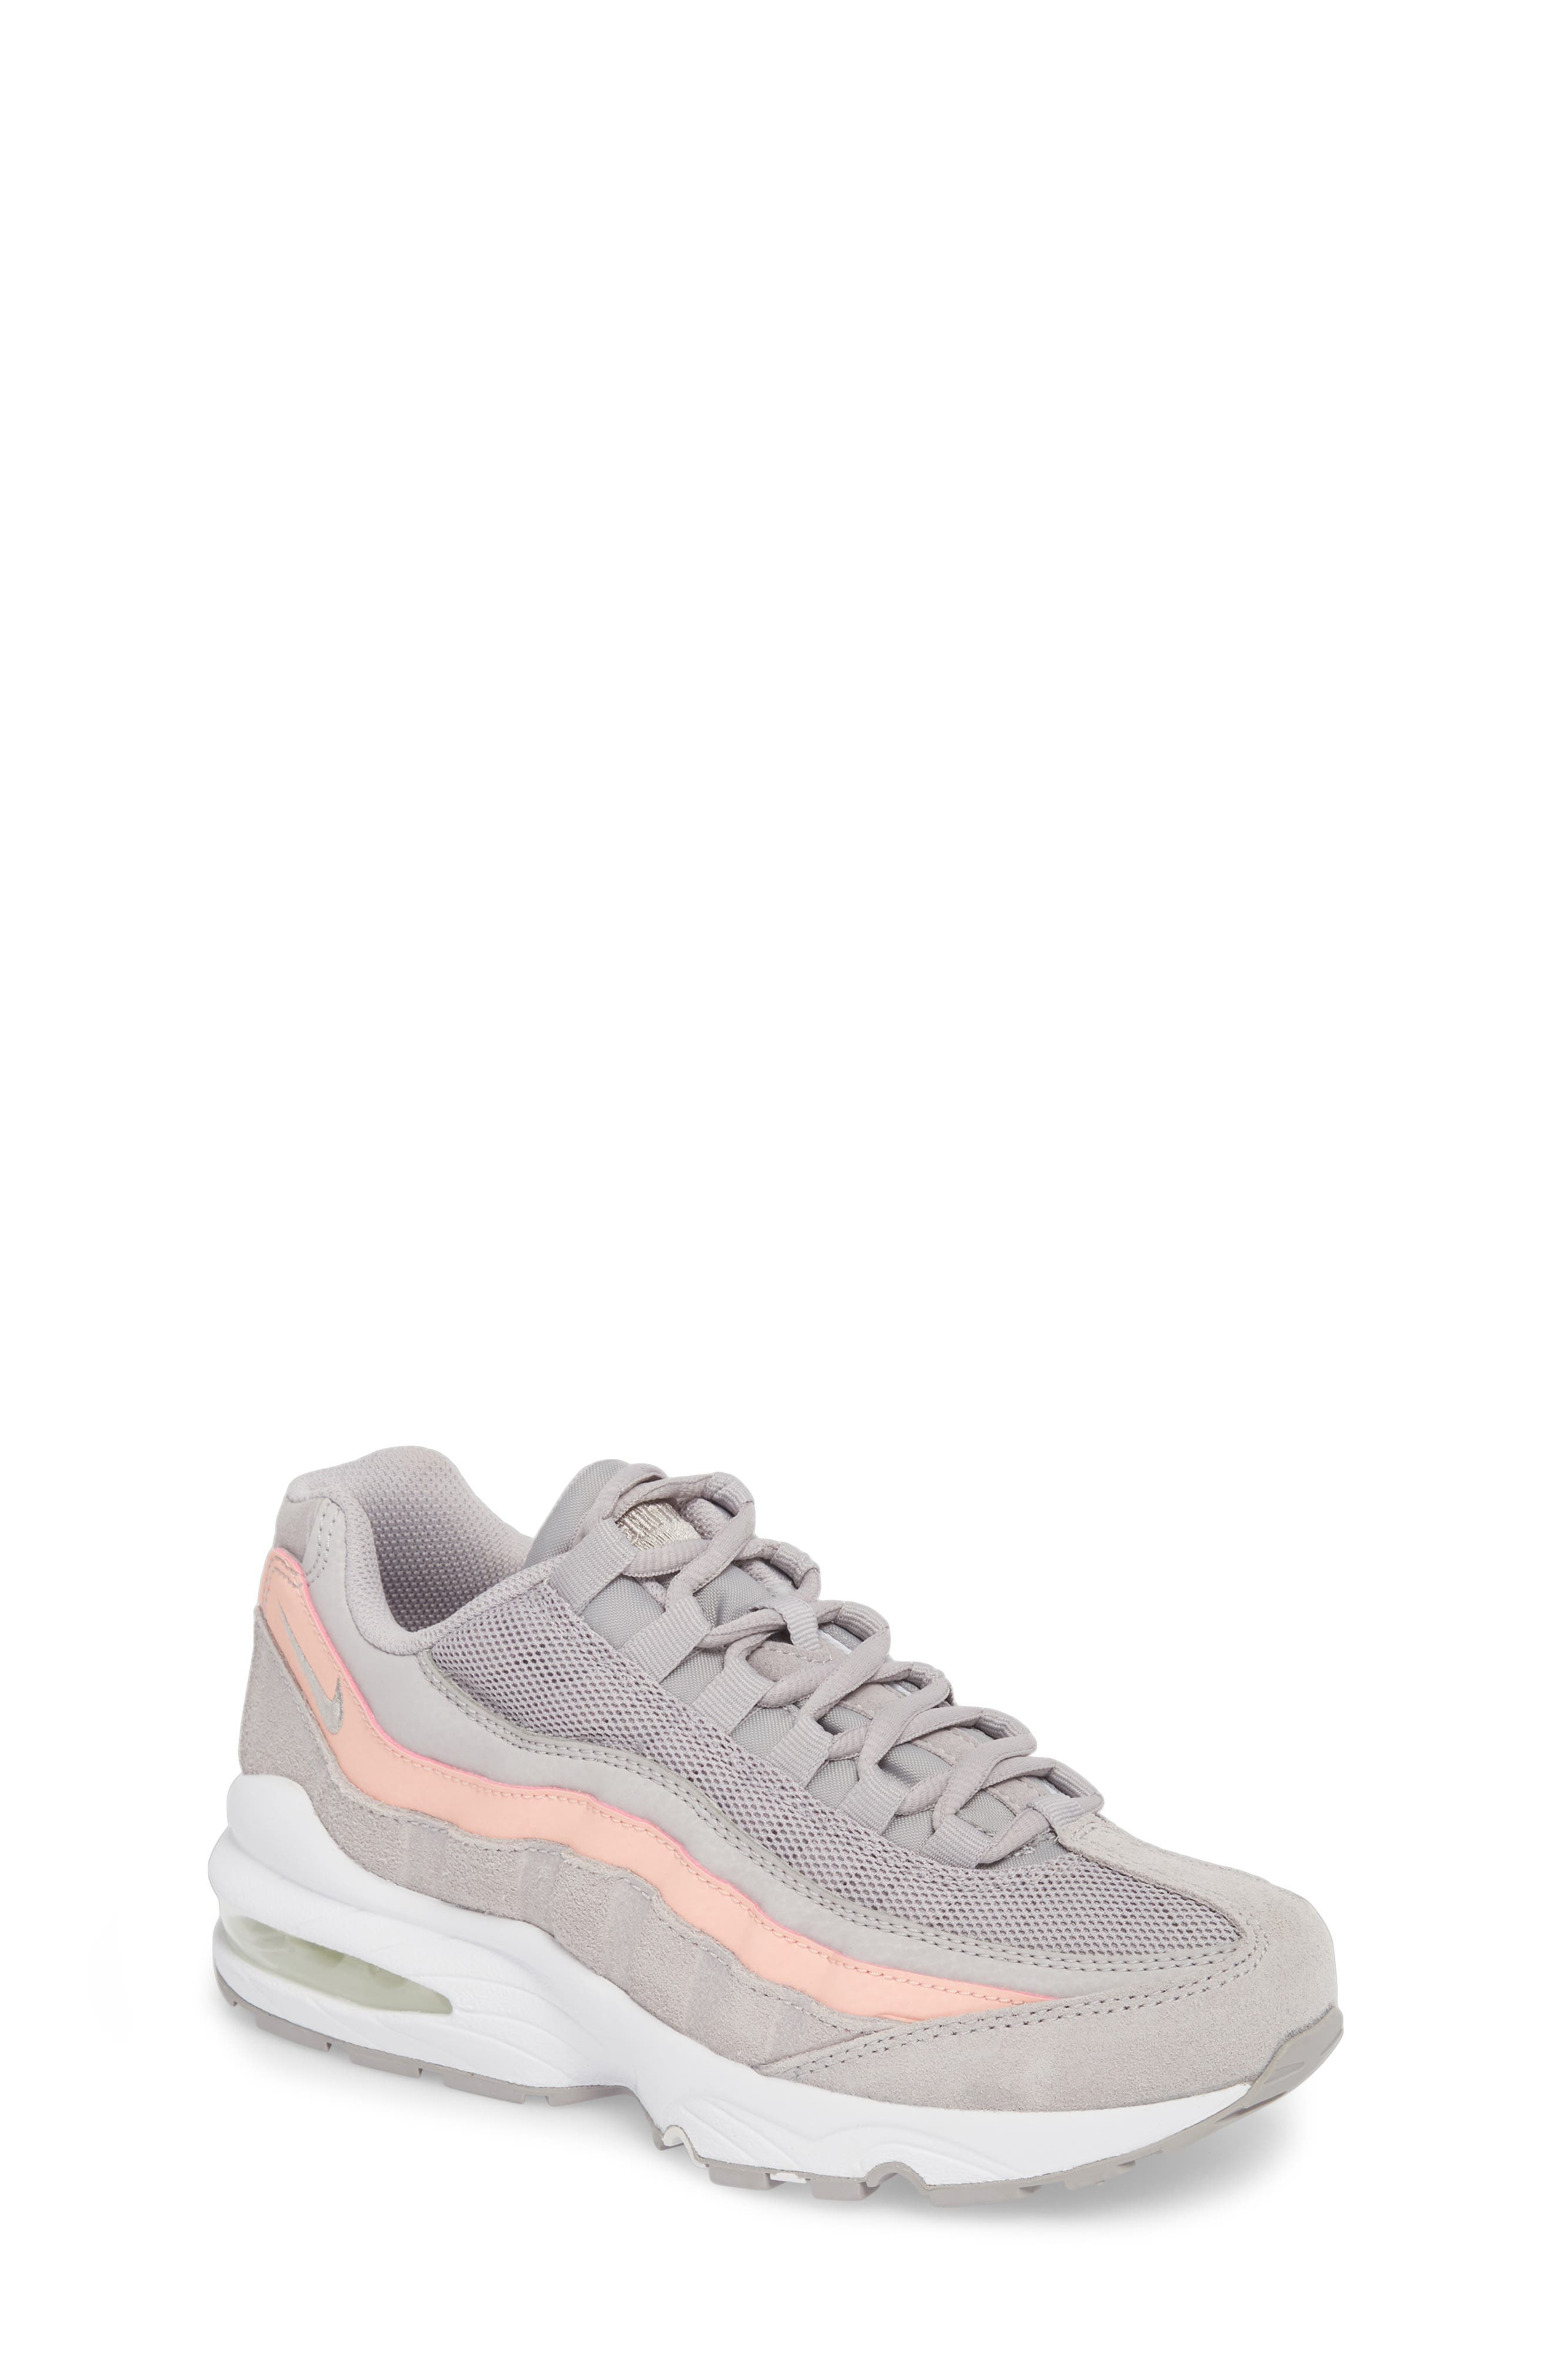 Air Max '95 LE Sneaker,                             Main thumbnail 1, color,                             Atmosphere Grey